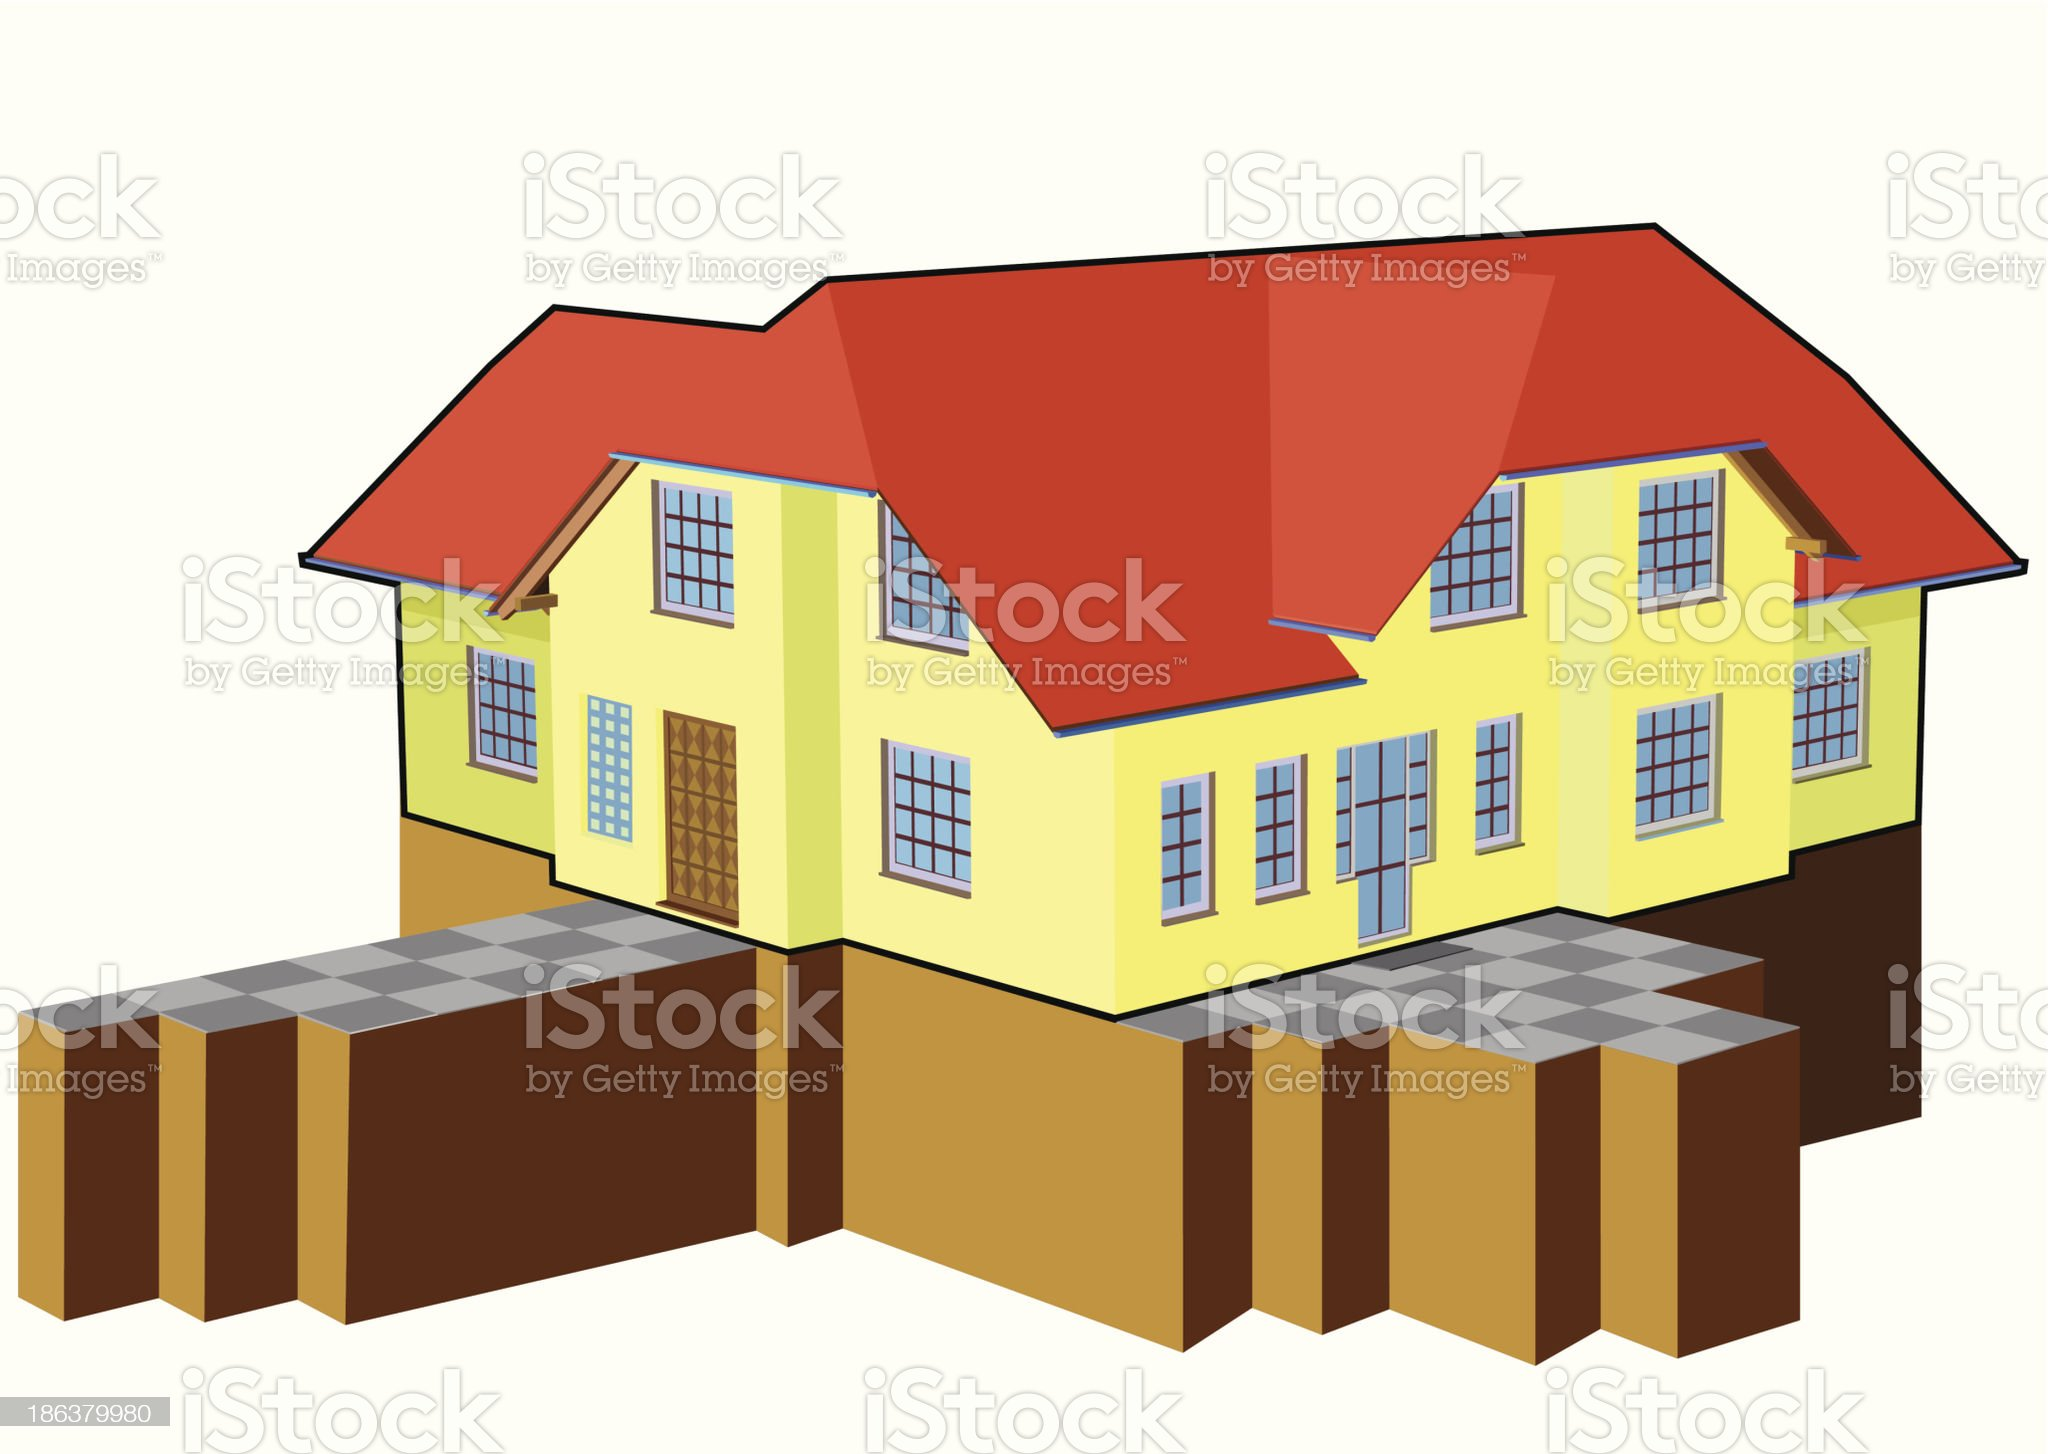 Houses ideas royalty-free stock vector art